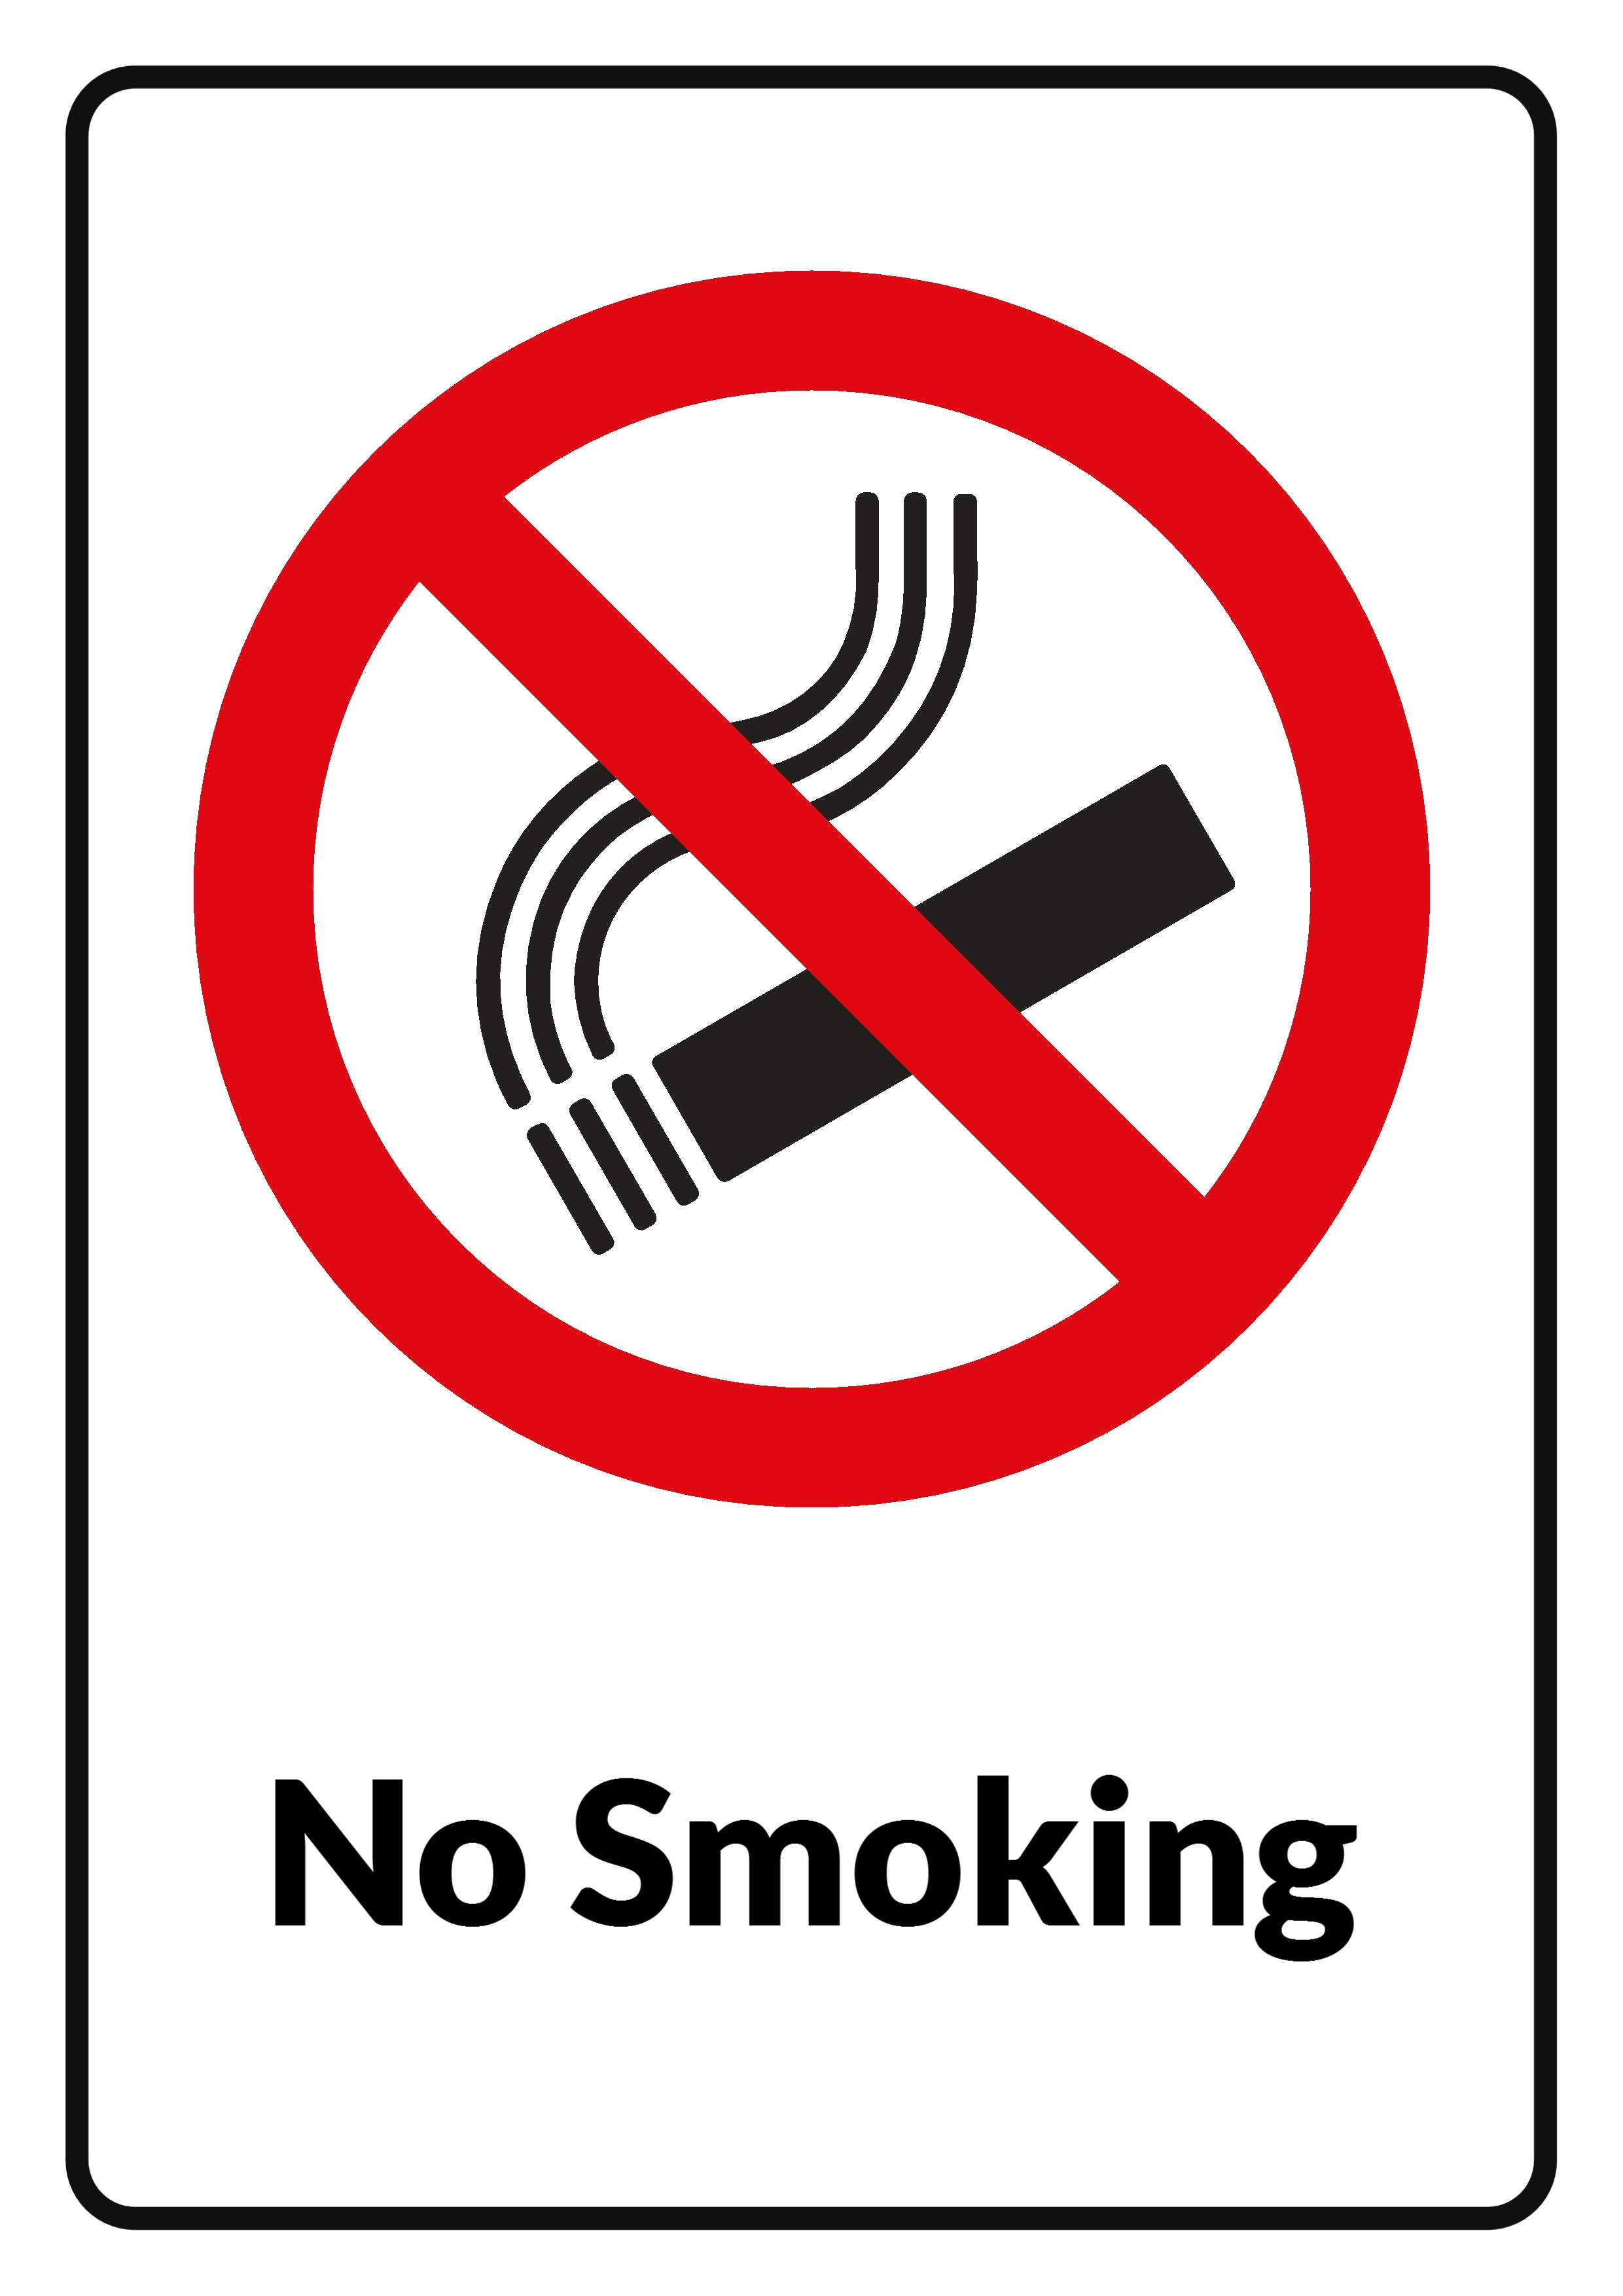 No smoking sign clip art free vector in open office drawing svg.